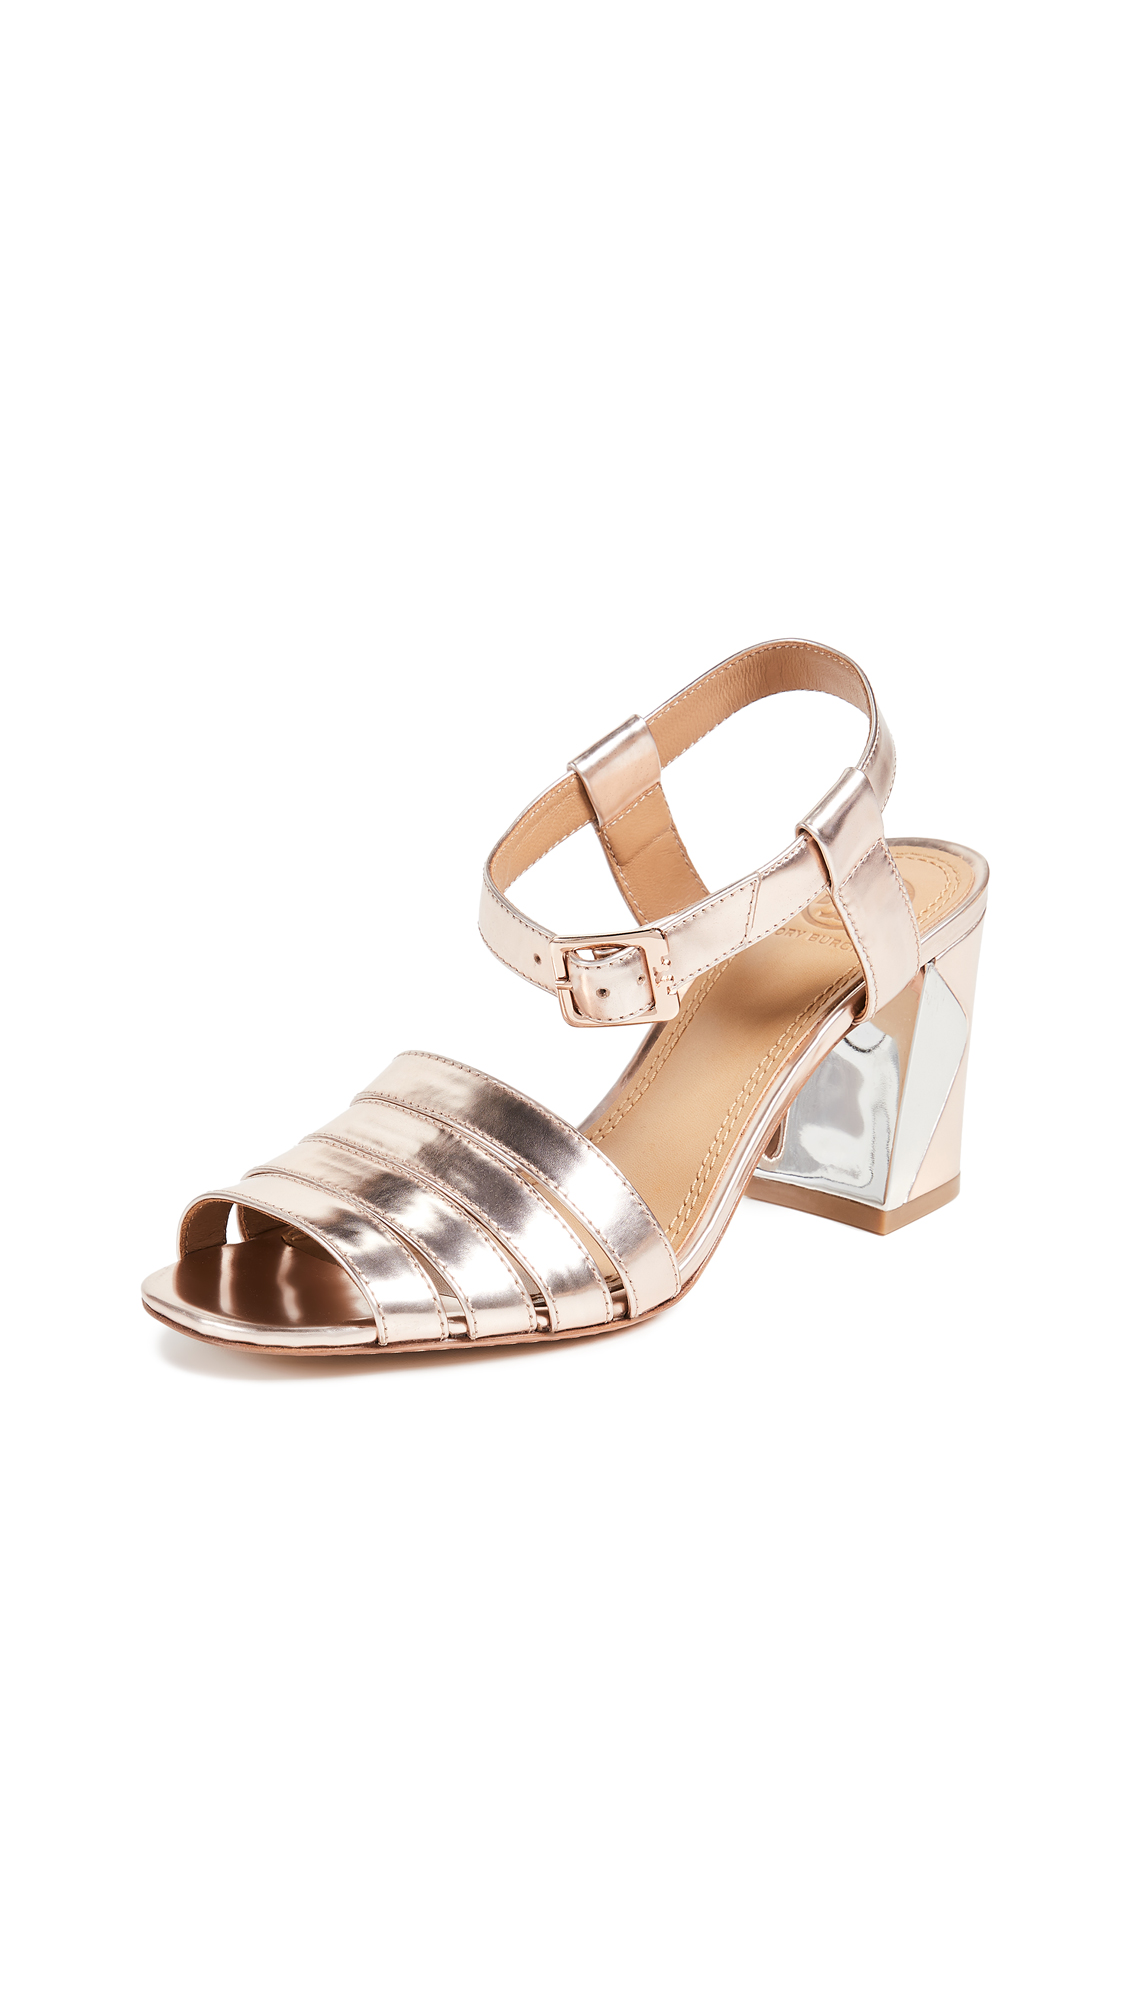 Tory Burch Bellman 75mm Metallic Sandals - Rose Gold